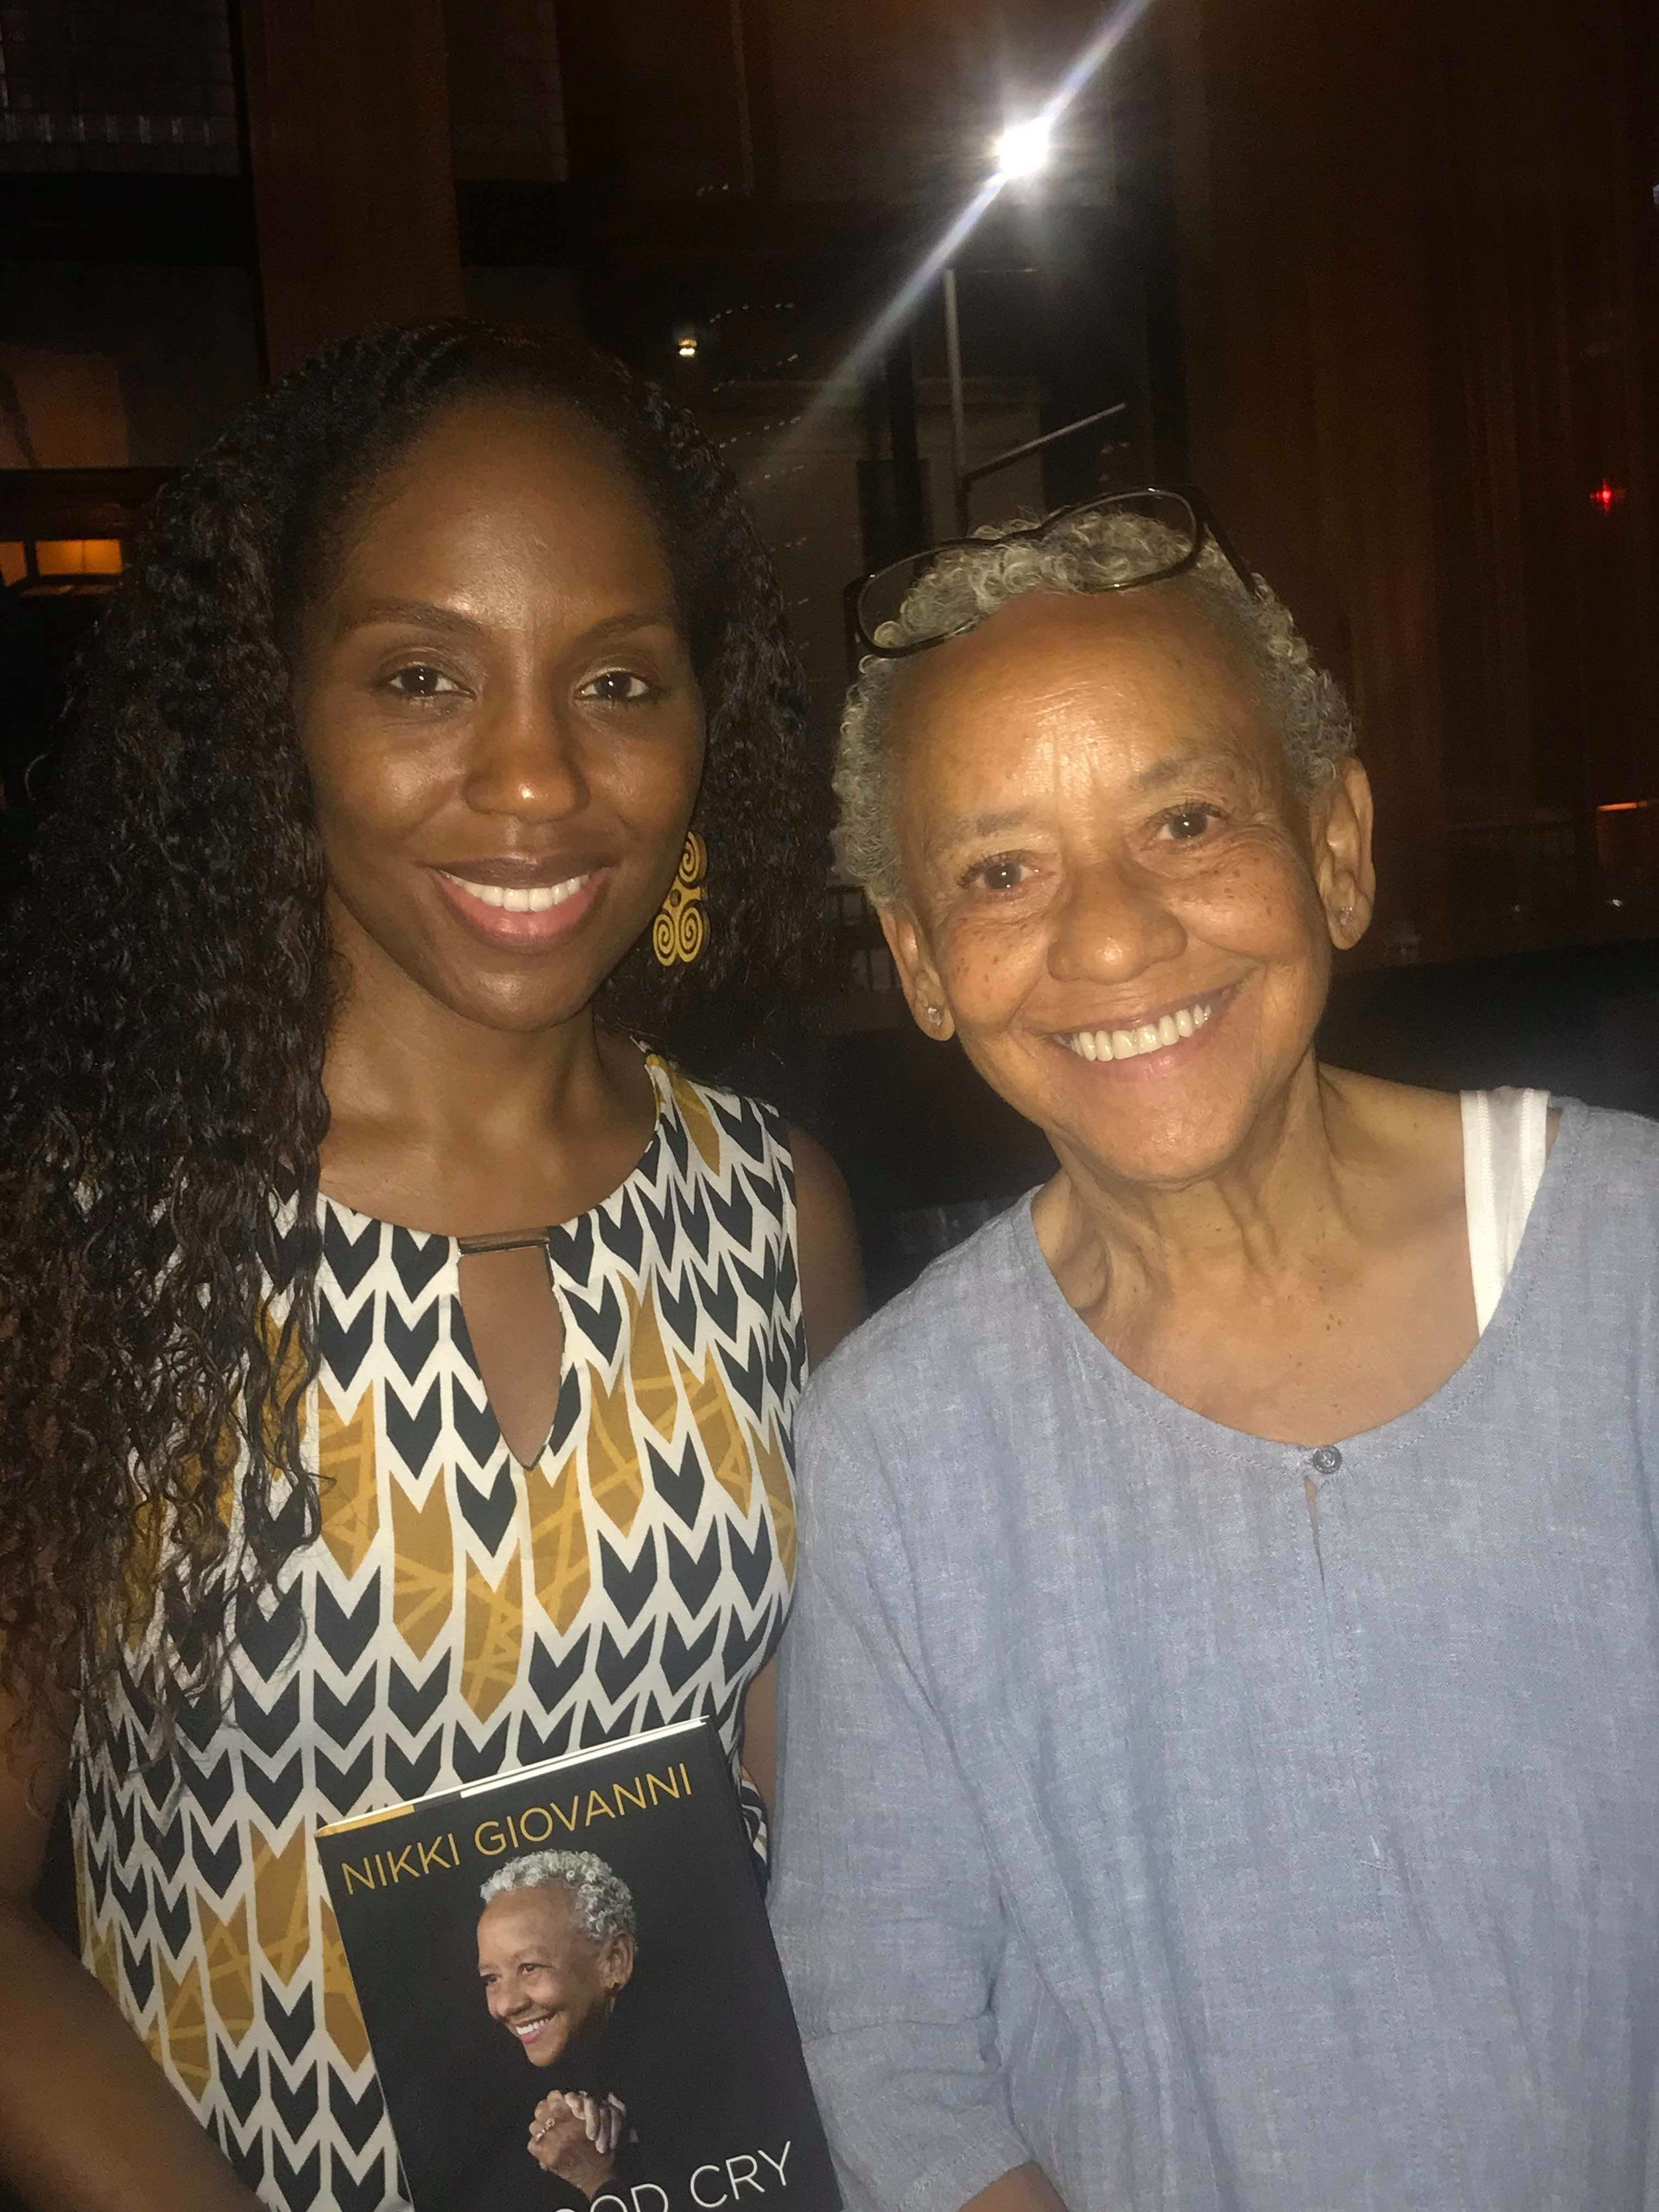 Nikki Giovanni - Nikki Giovanni pictured here with Dr. Nadia Richardson of No More Martyrs.